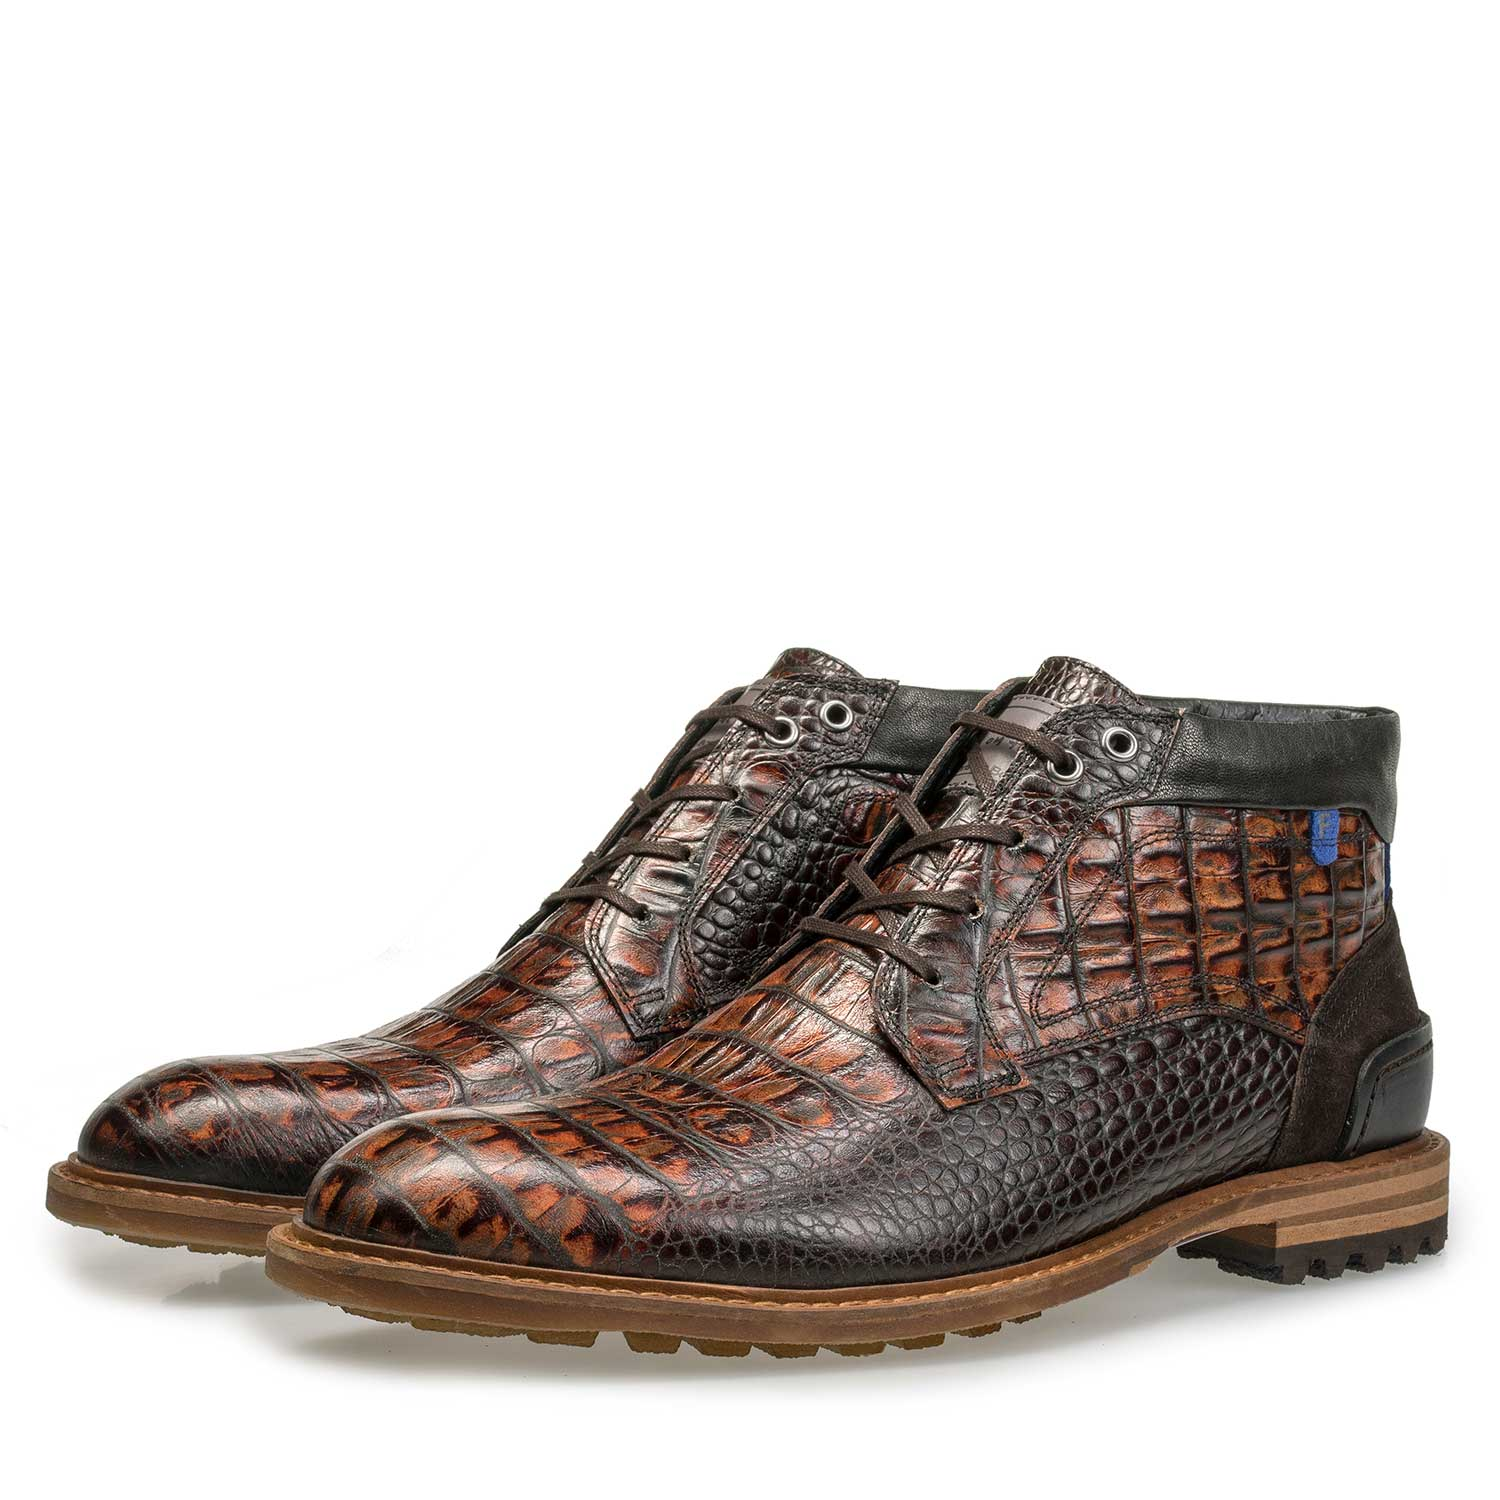 10228/12 - Mid-high brown leather lace boot with croco print